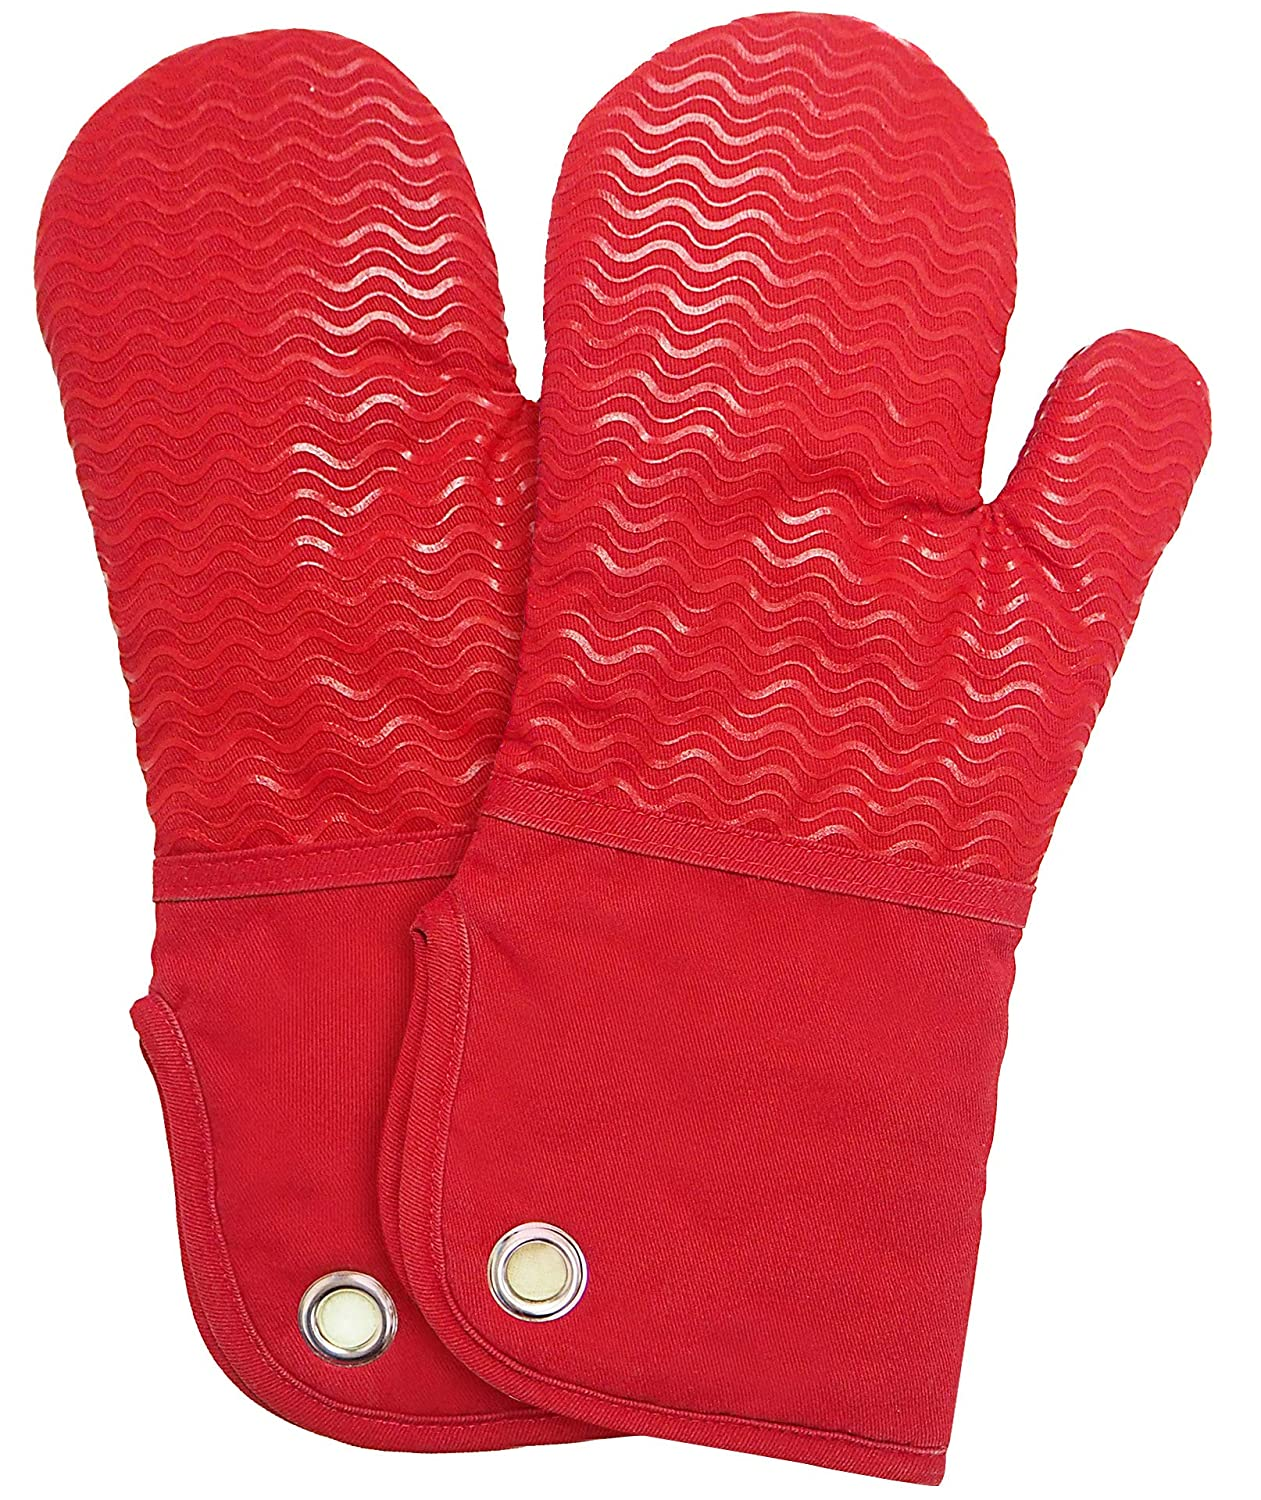 Silicone Groment Oven Mitts with Heat Resistant Non-Slip Set of 2, Cotton Quilting Lining, Oven Gloves and Pot Holders Kitchen Set for BBQ Cooking Baking, Grilling, Barbecue, Machine Washable Red